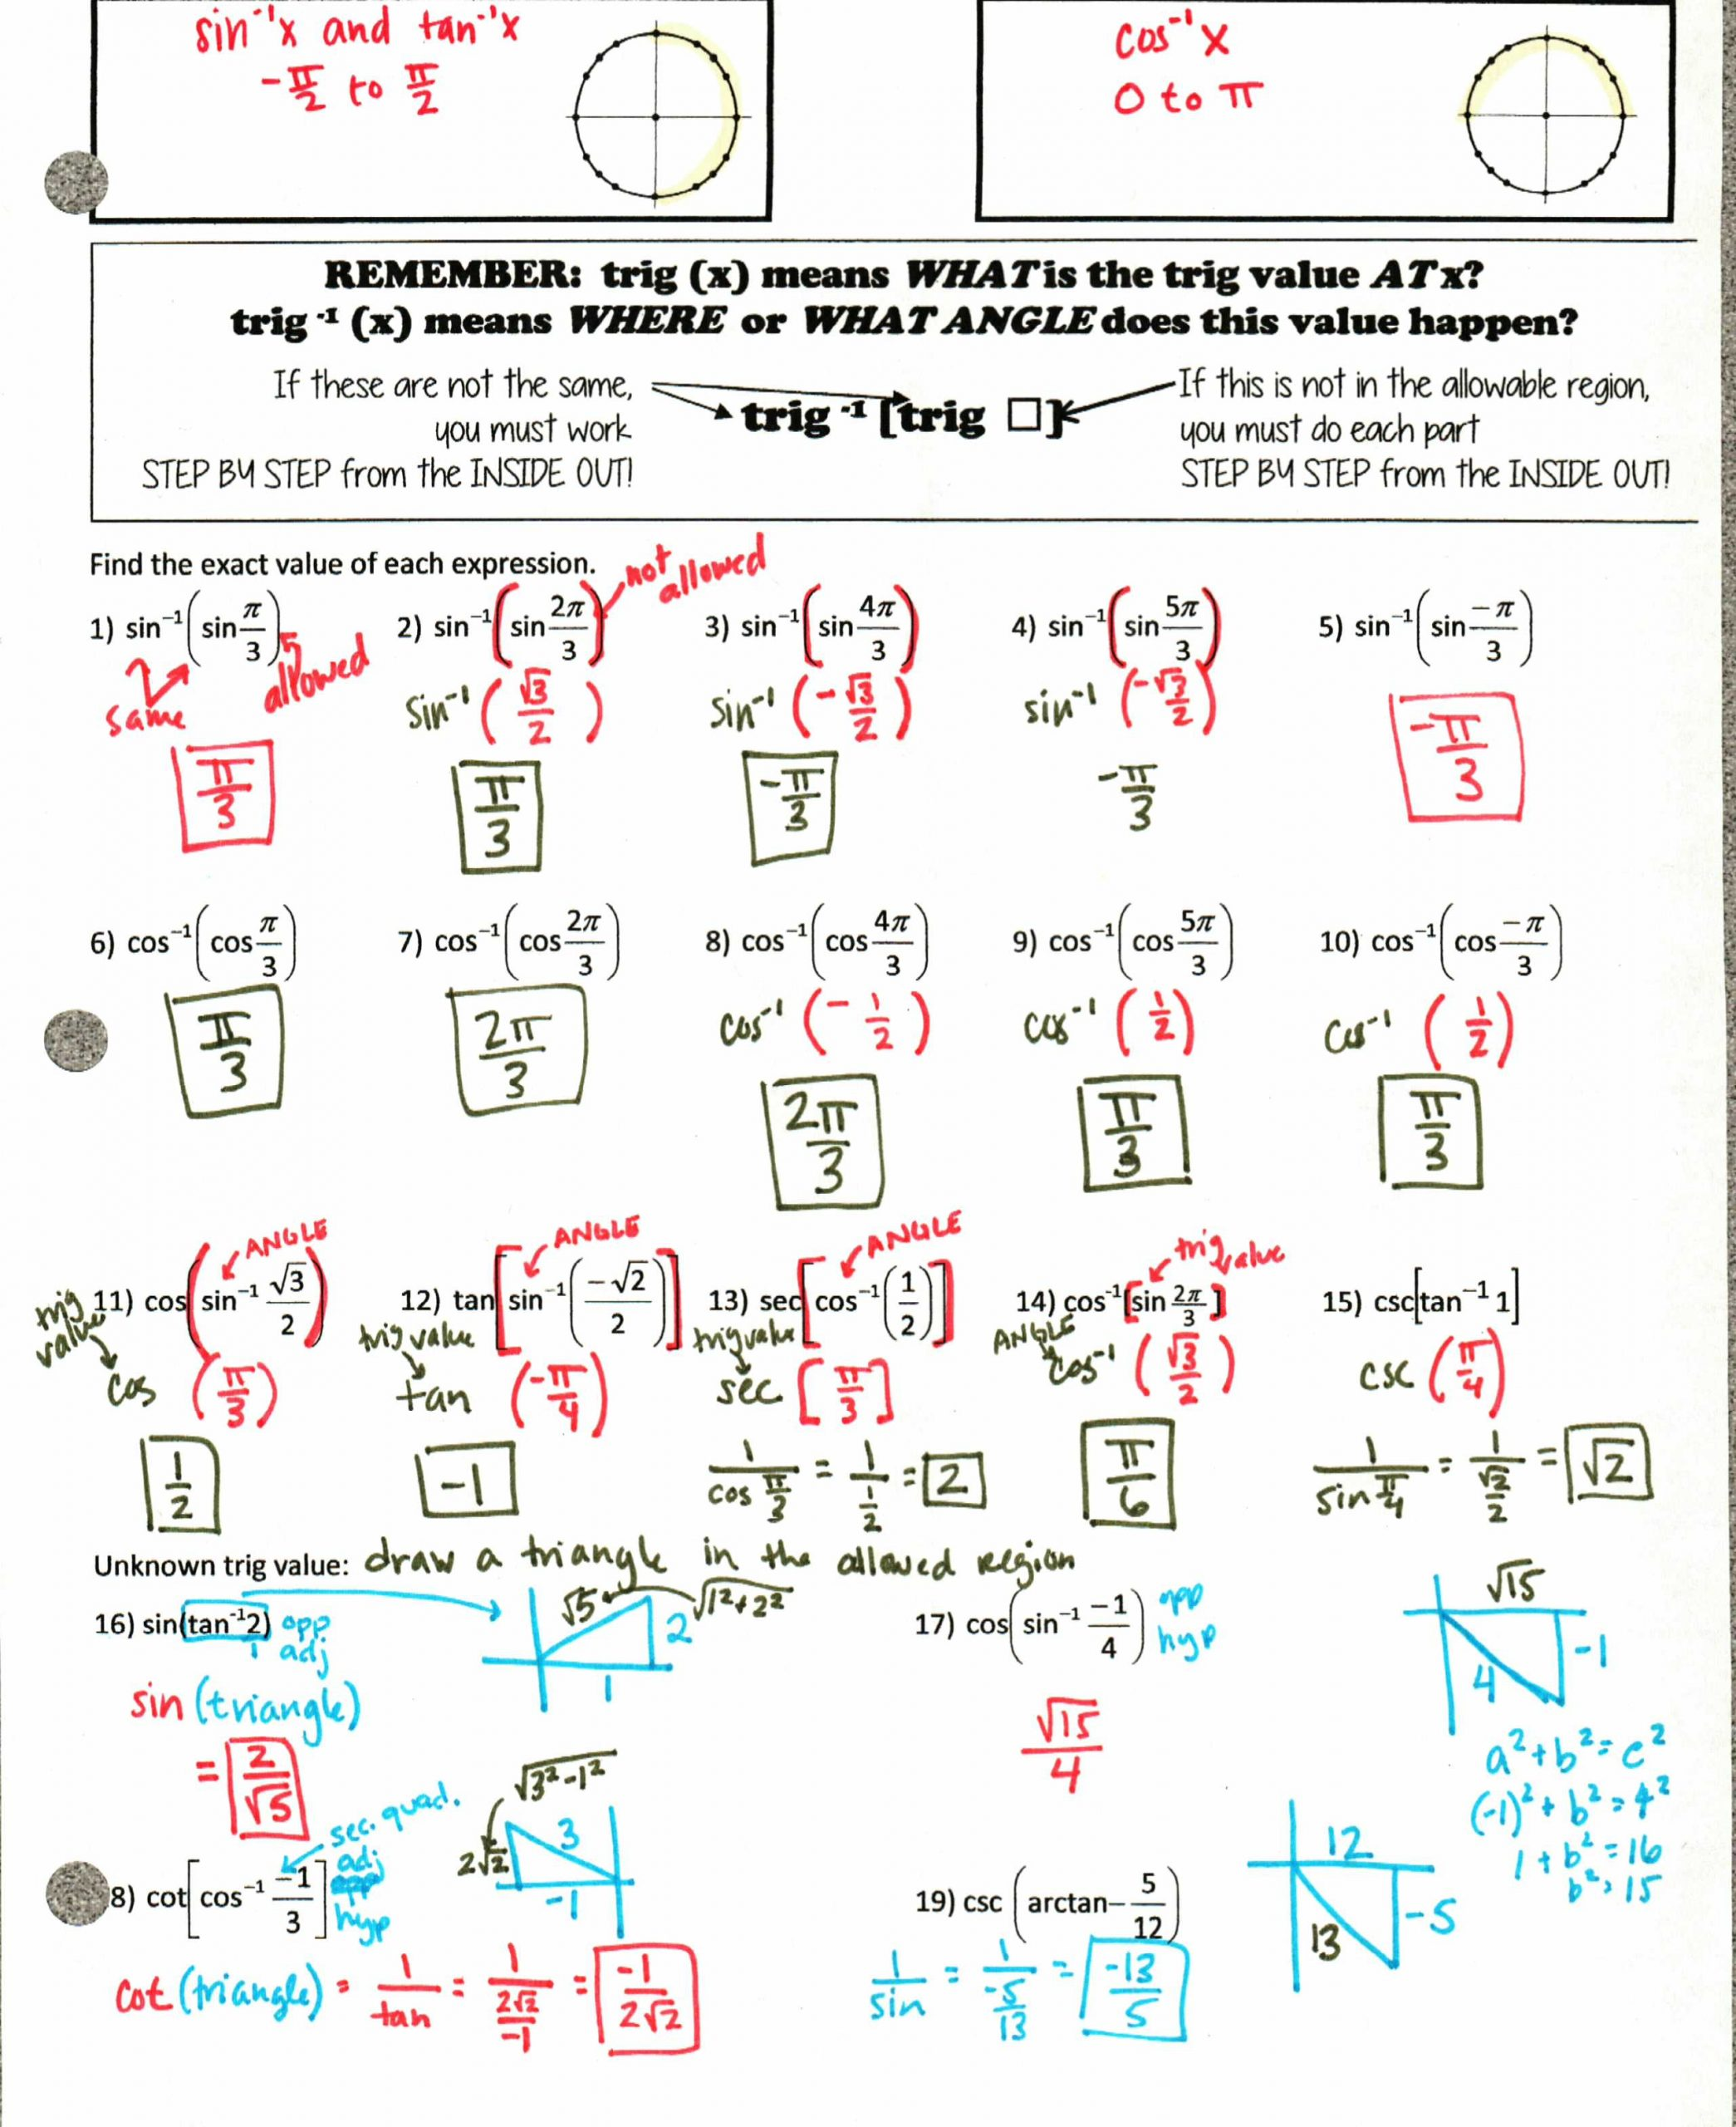 30 Trig Word Problems Worksheet Answers